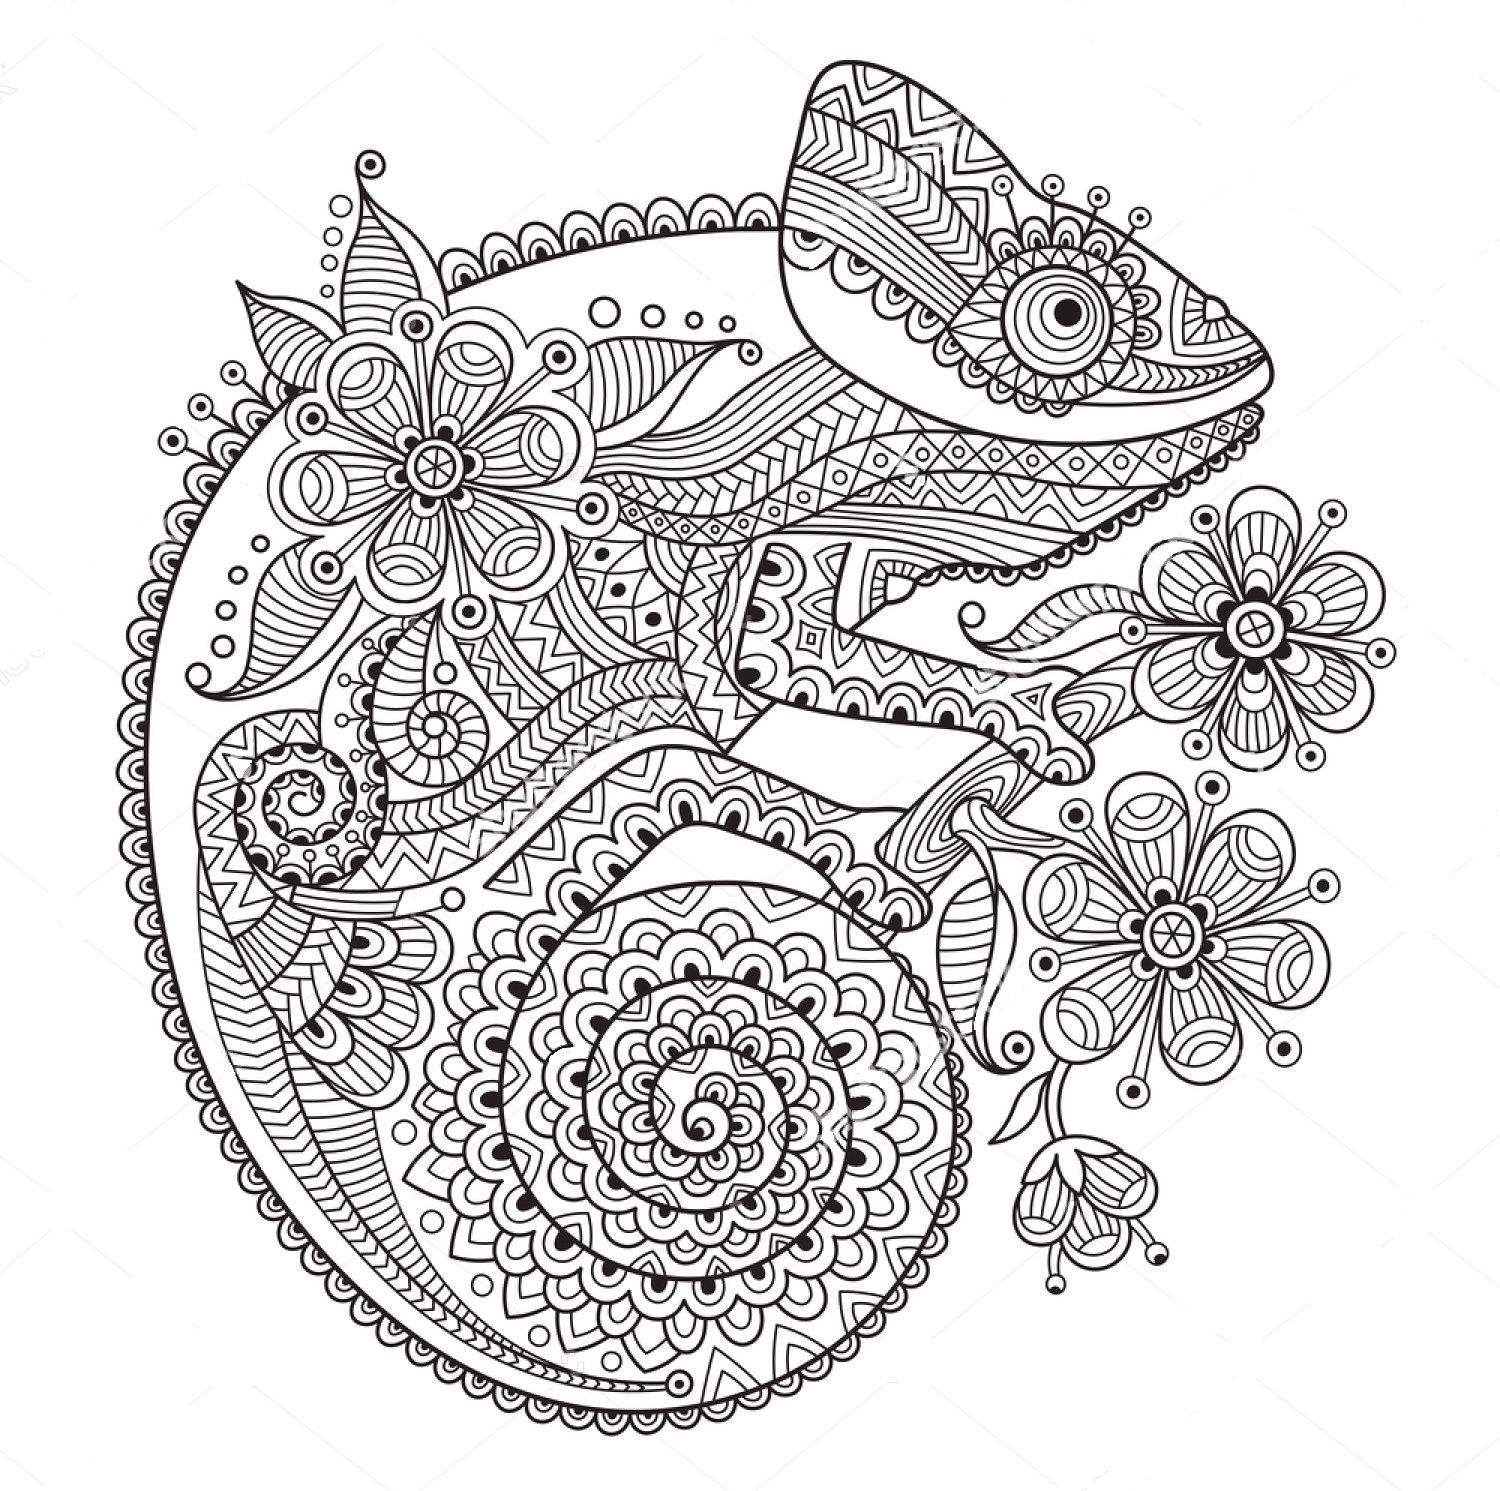 Chameleon Zentangle Coloring Page Pattern Coloring Pages Mandala Coloring Pages Coloring Pages